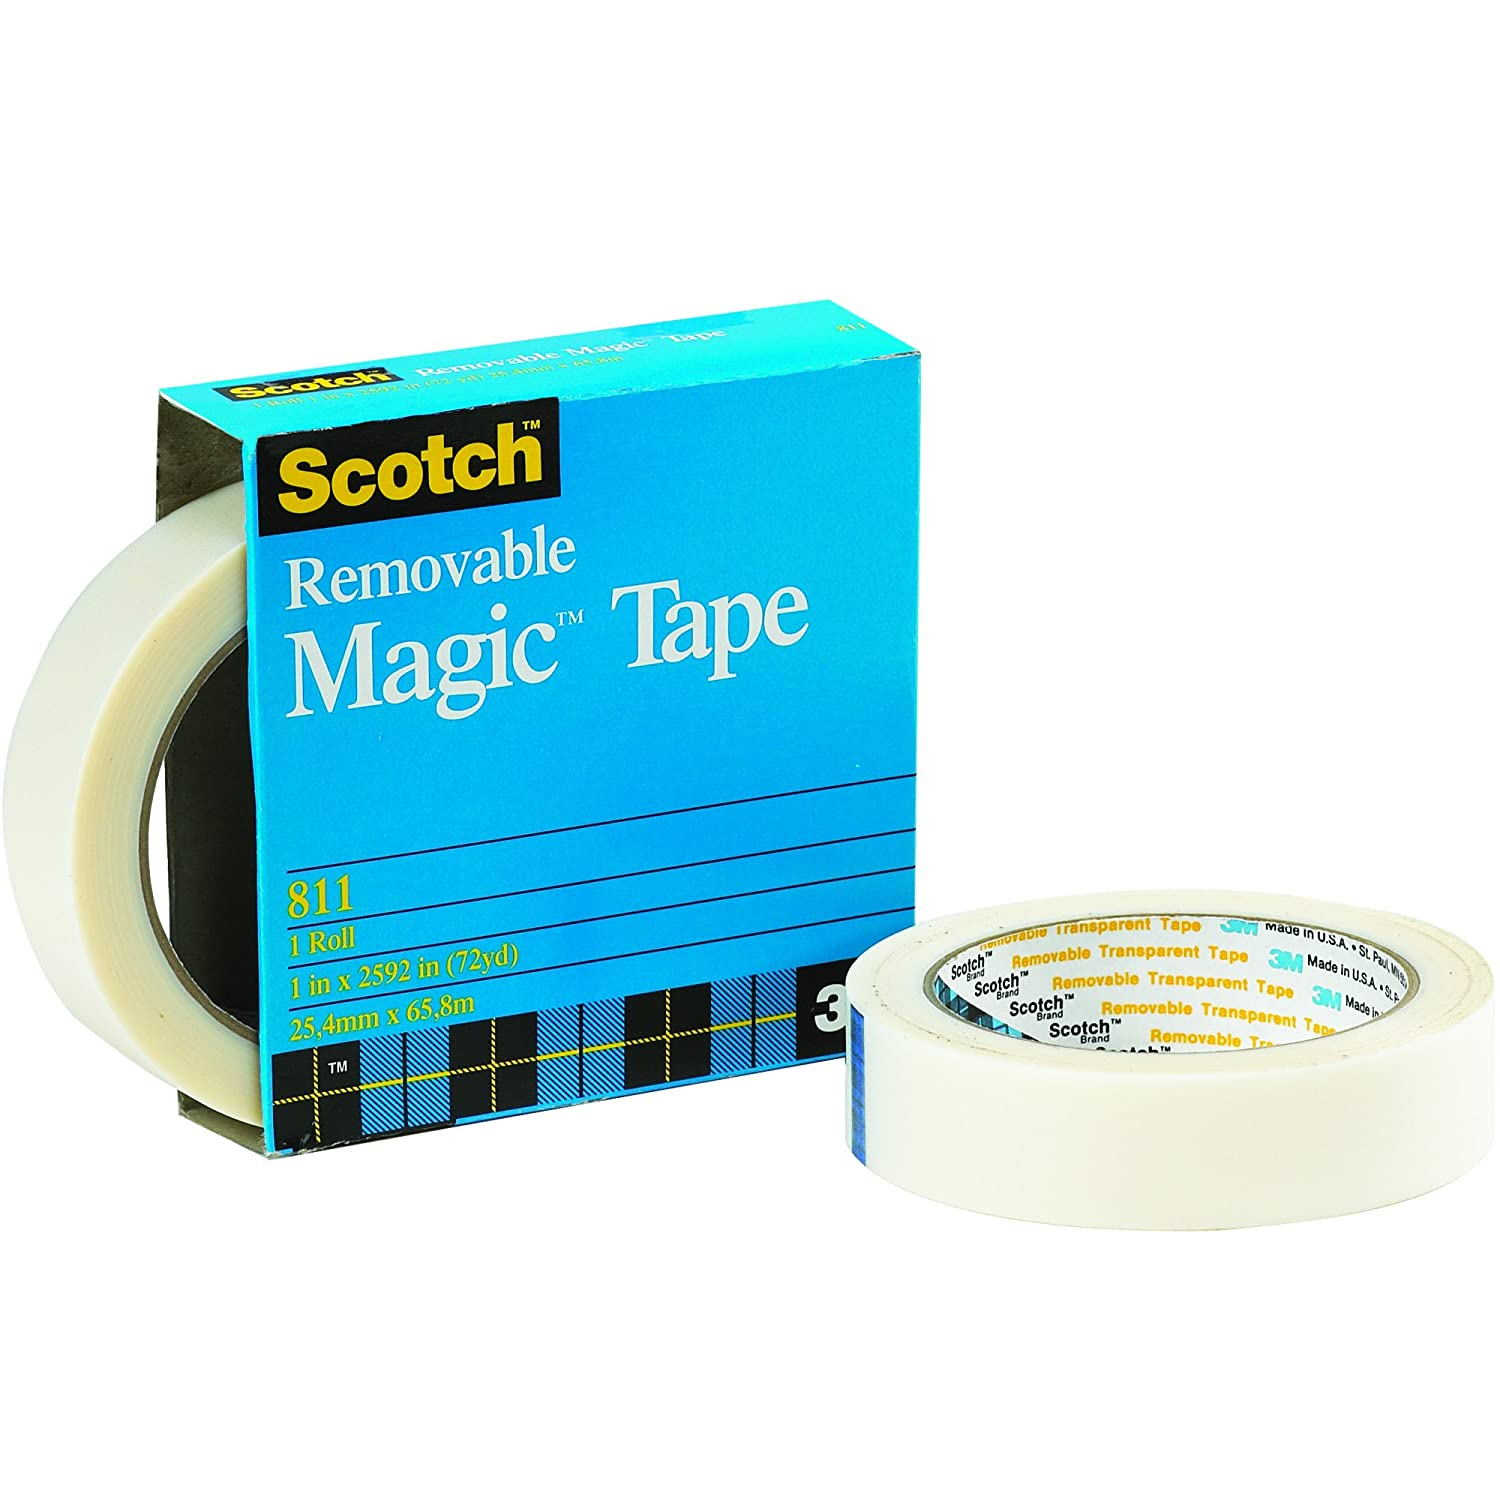 Scotch 811 Magic Tape Removable 2.0 Mil yds Trans 36 Max 68% OFF 25% OFF x 1 2